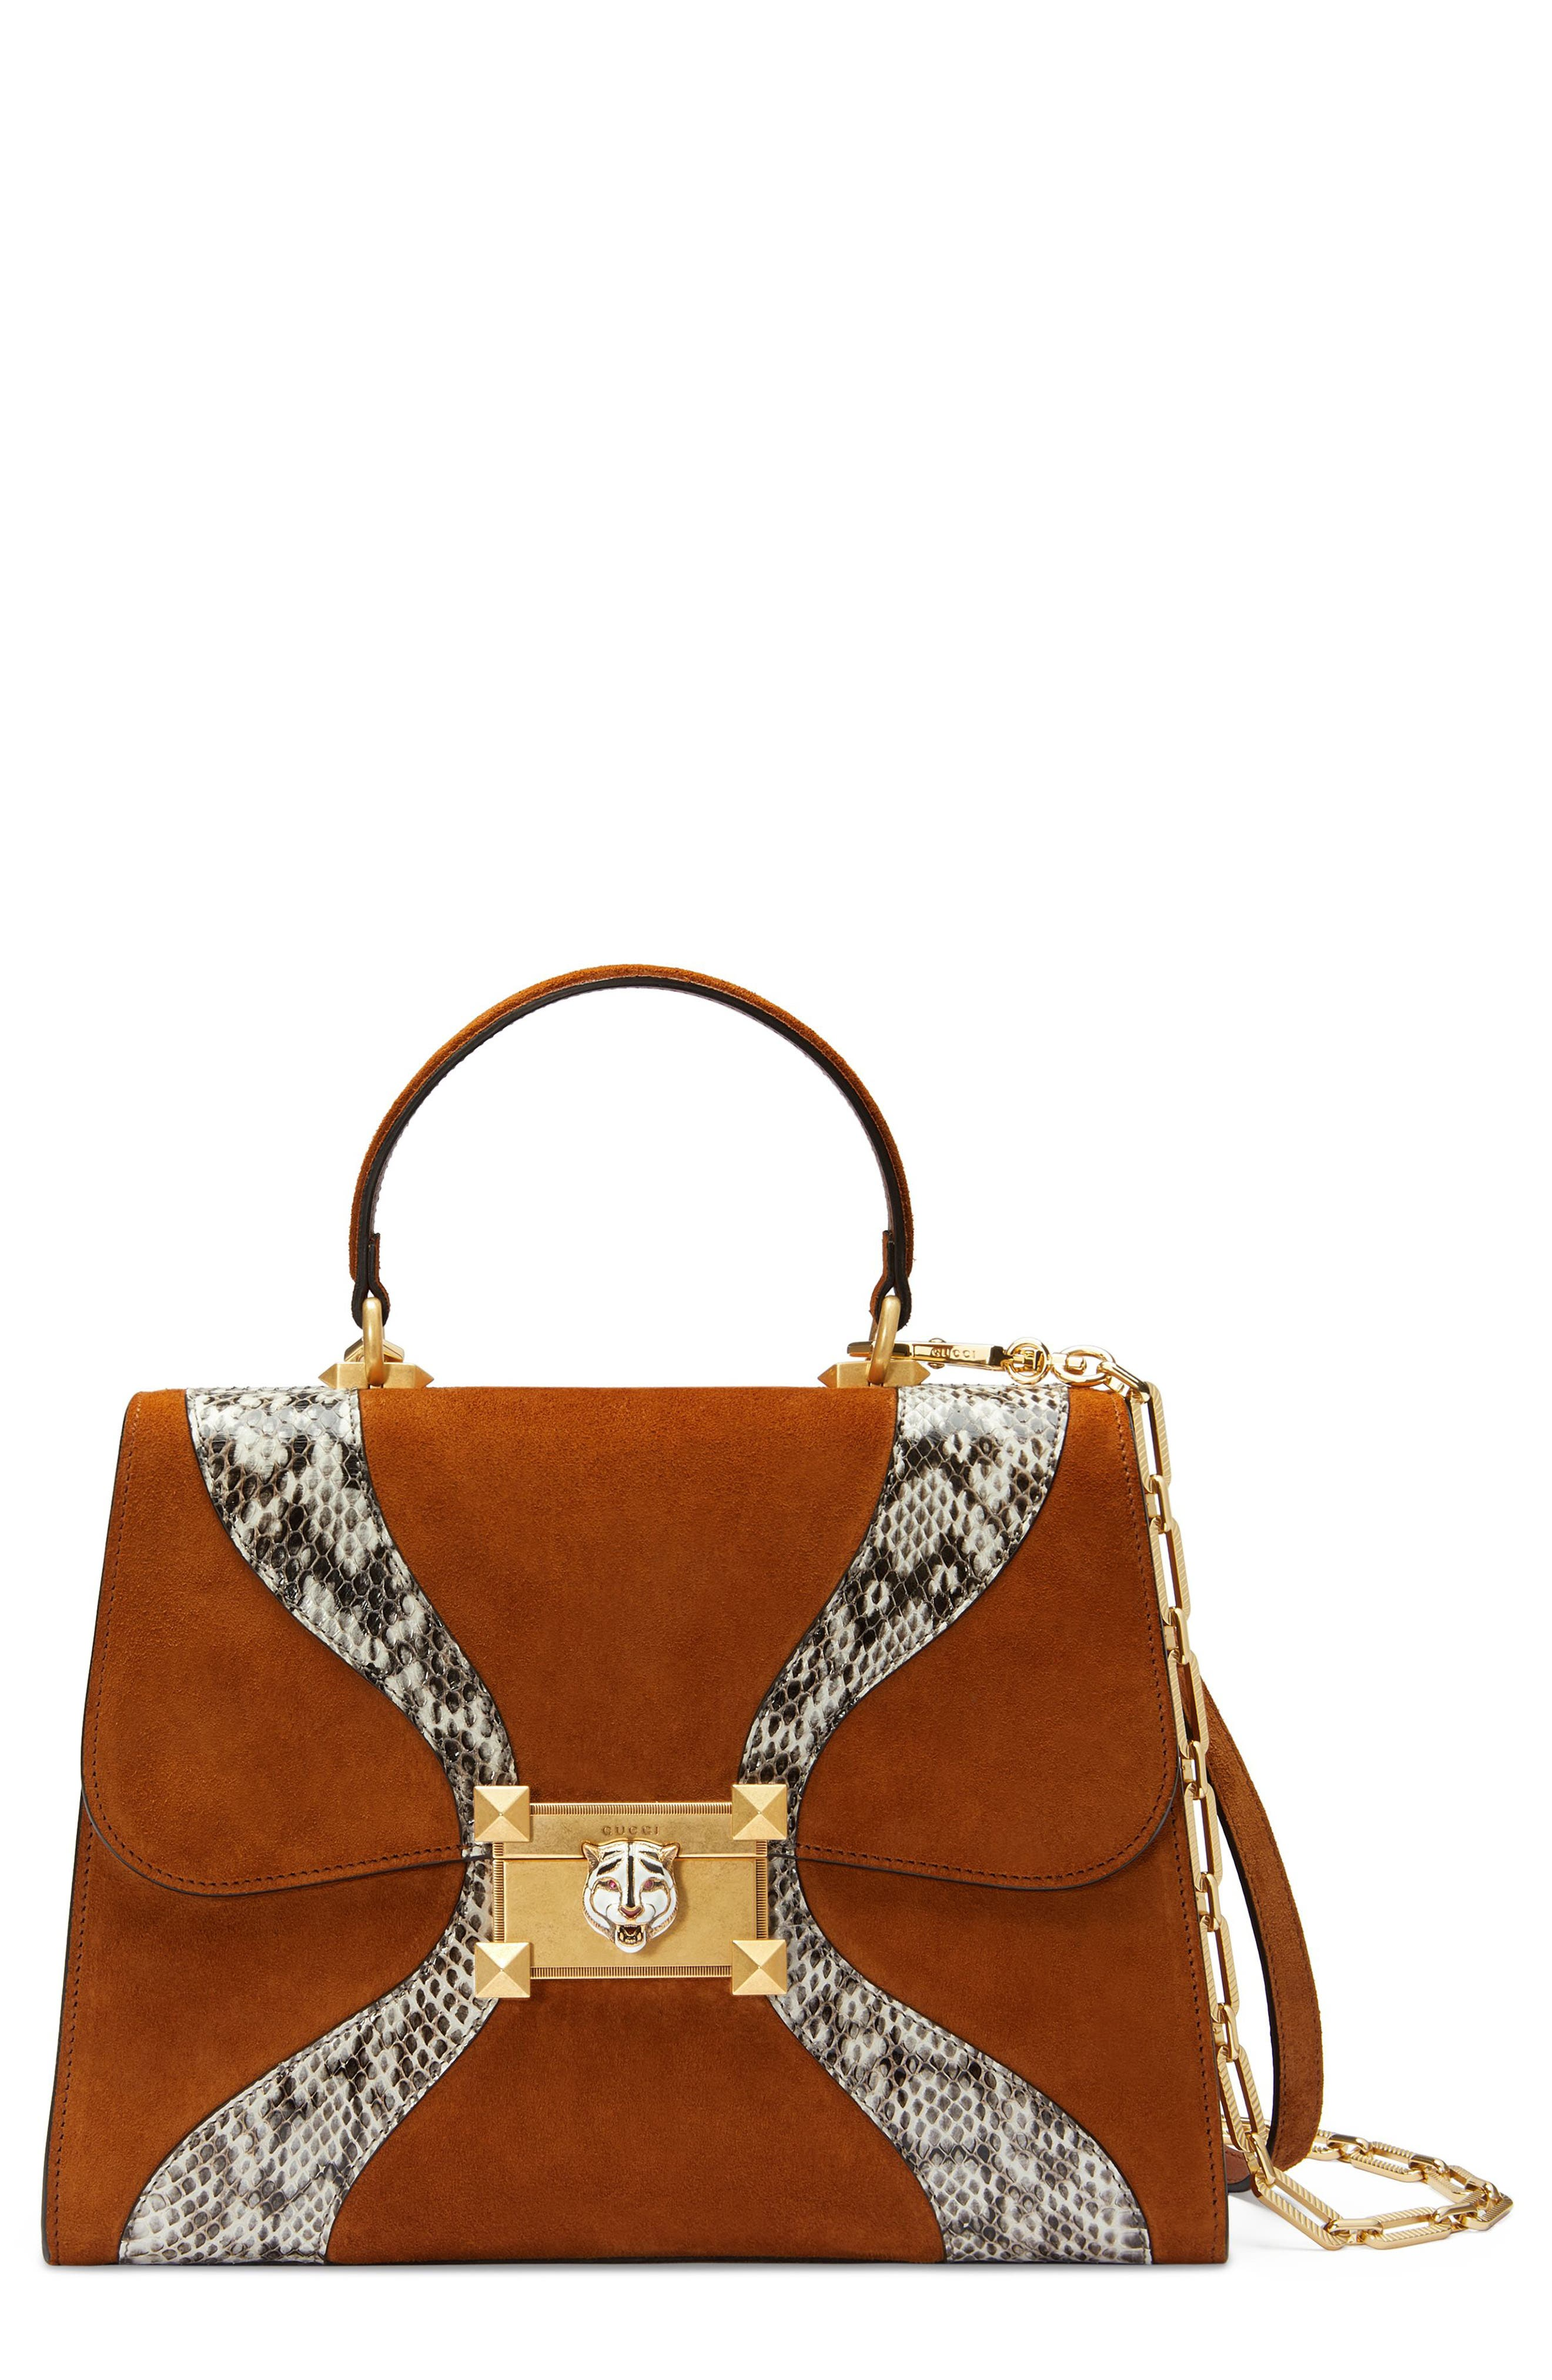 Small Osiride Leather & Canvas Top Handle Satchel,                             Main thumbnail 1, color,                             BRIGHT CUIR/ ROCCIA